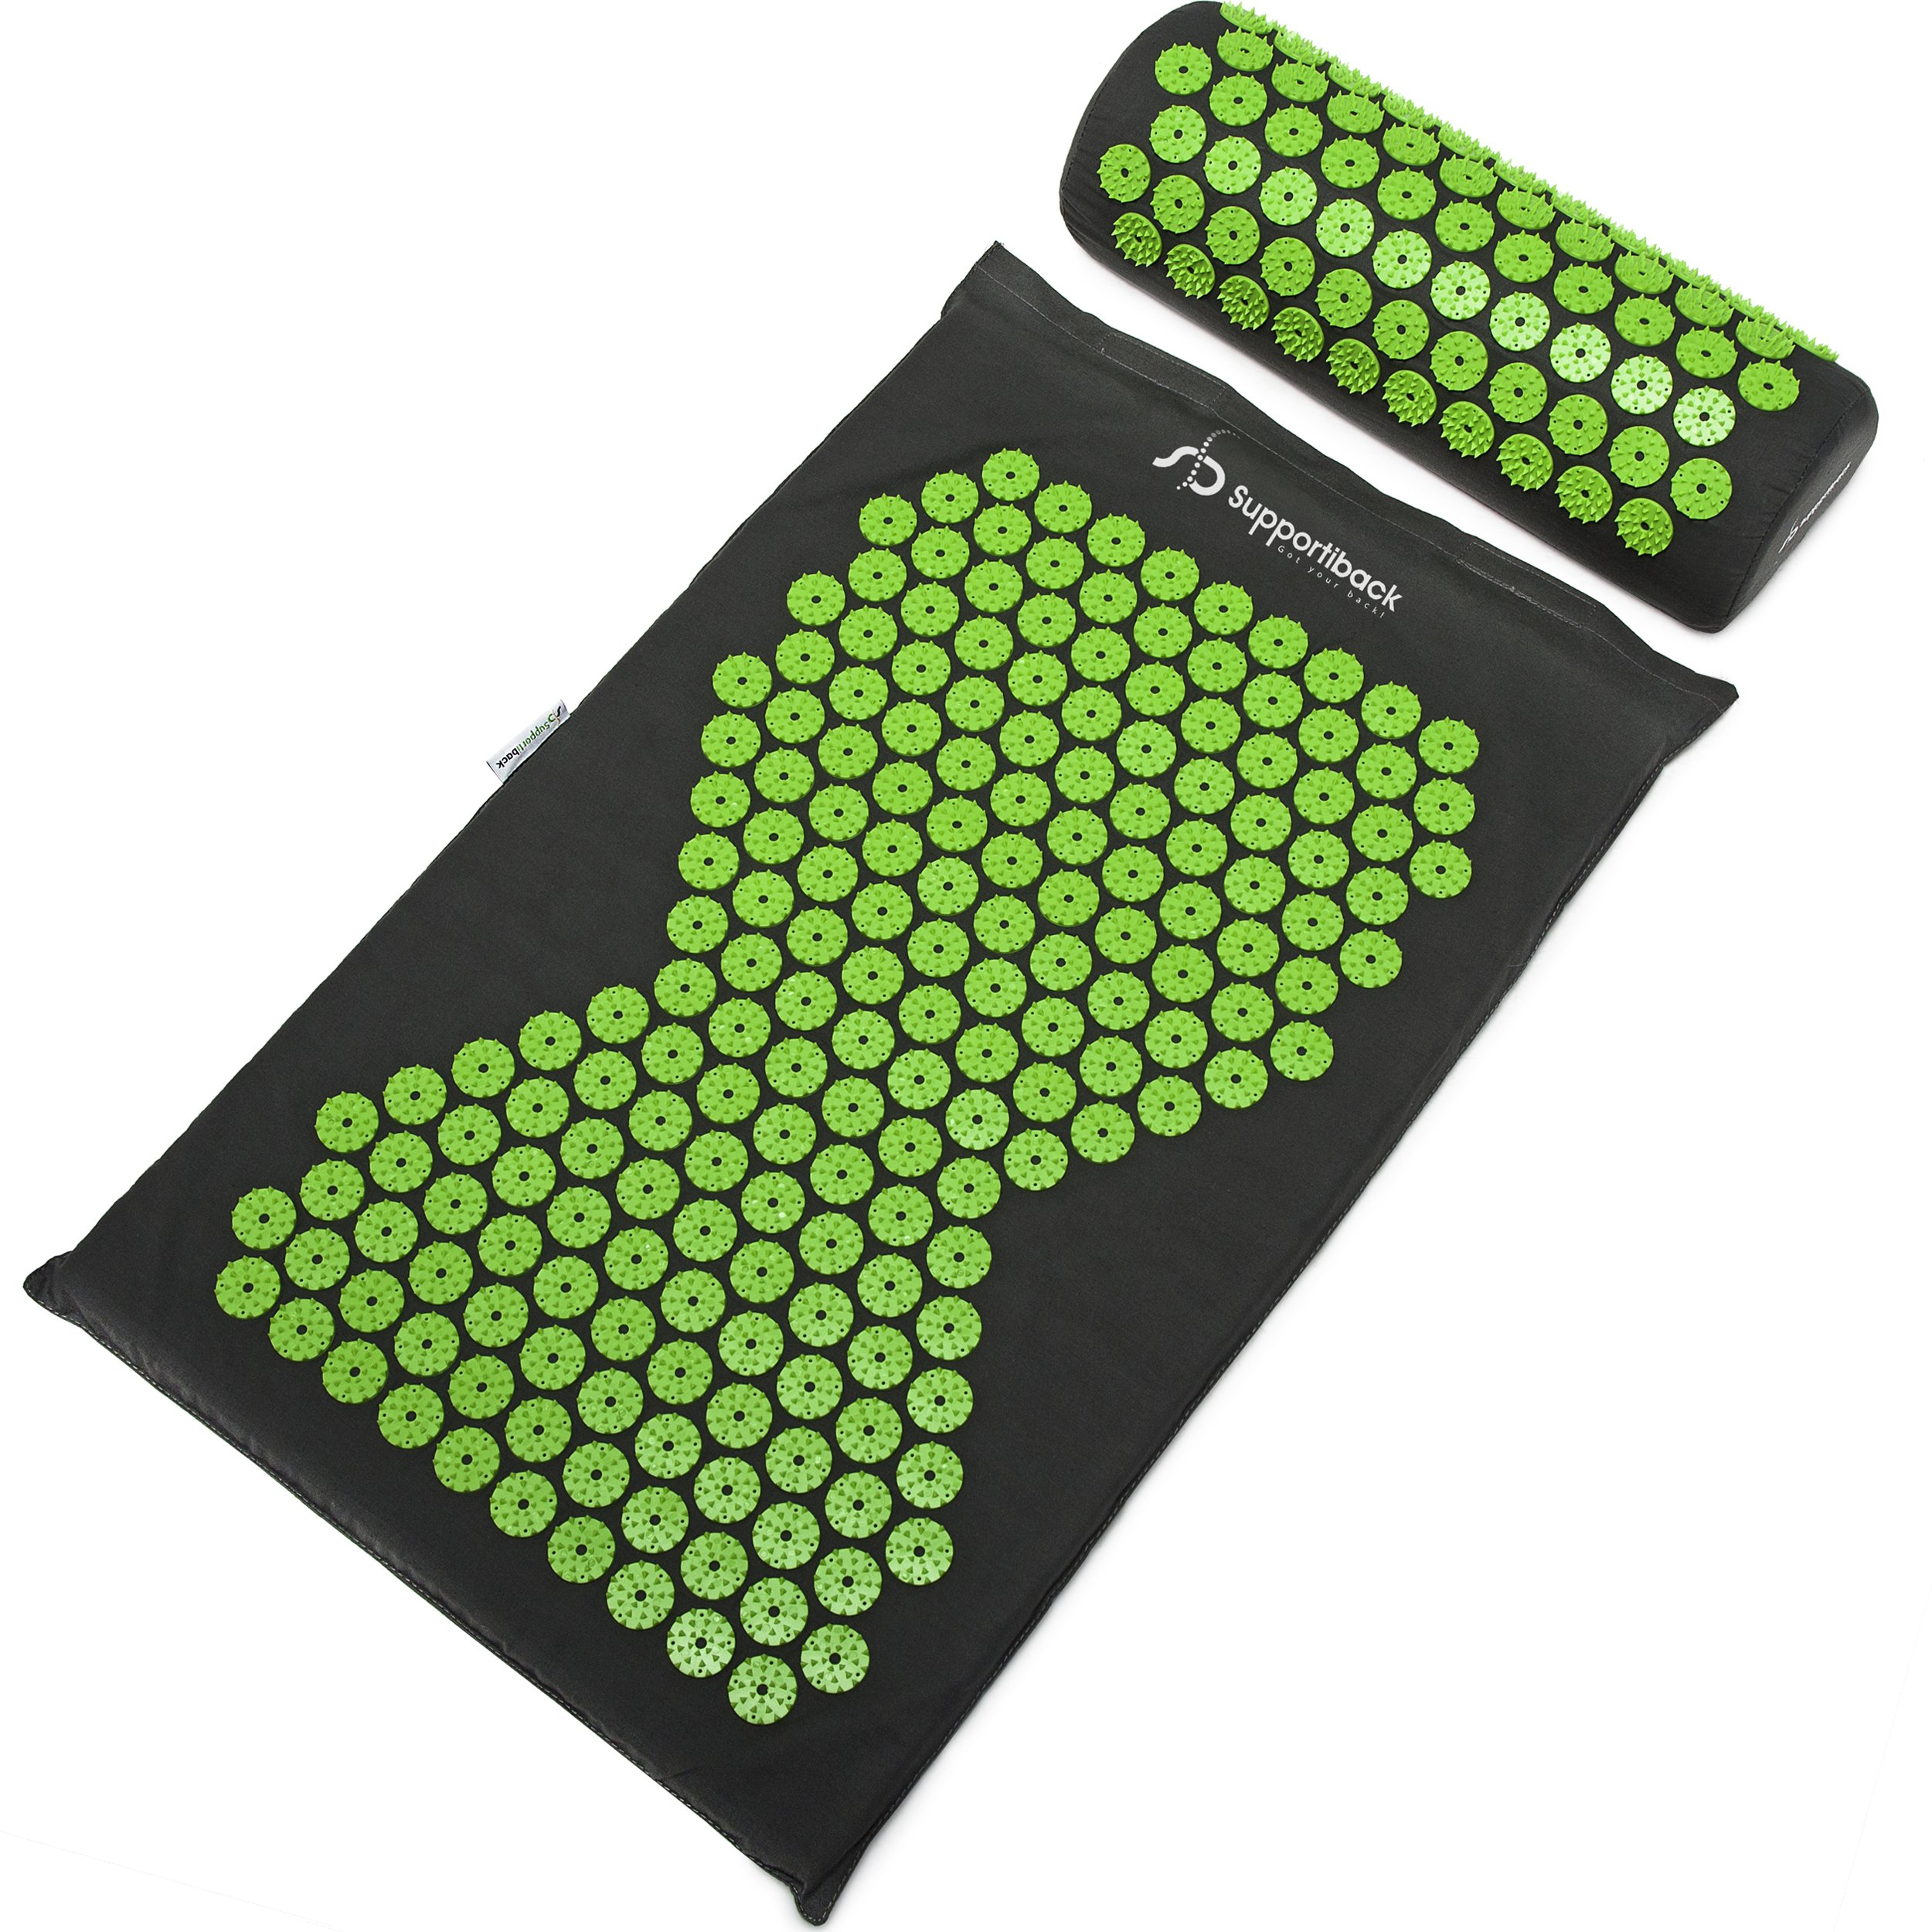 Supportiback Wellness Therapy Acupressure Mat Set - Prick Free Acupuncture Mat and Acupuncture Pillow for Relaxation and Pain Relief - Massage Mat, Acupressure Cushion, Washable Cover and Travel Bag